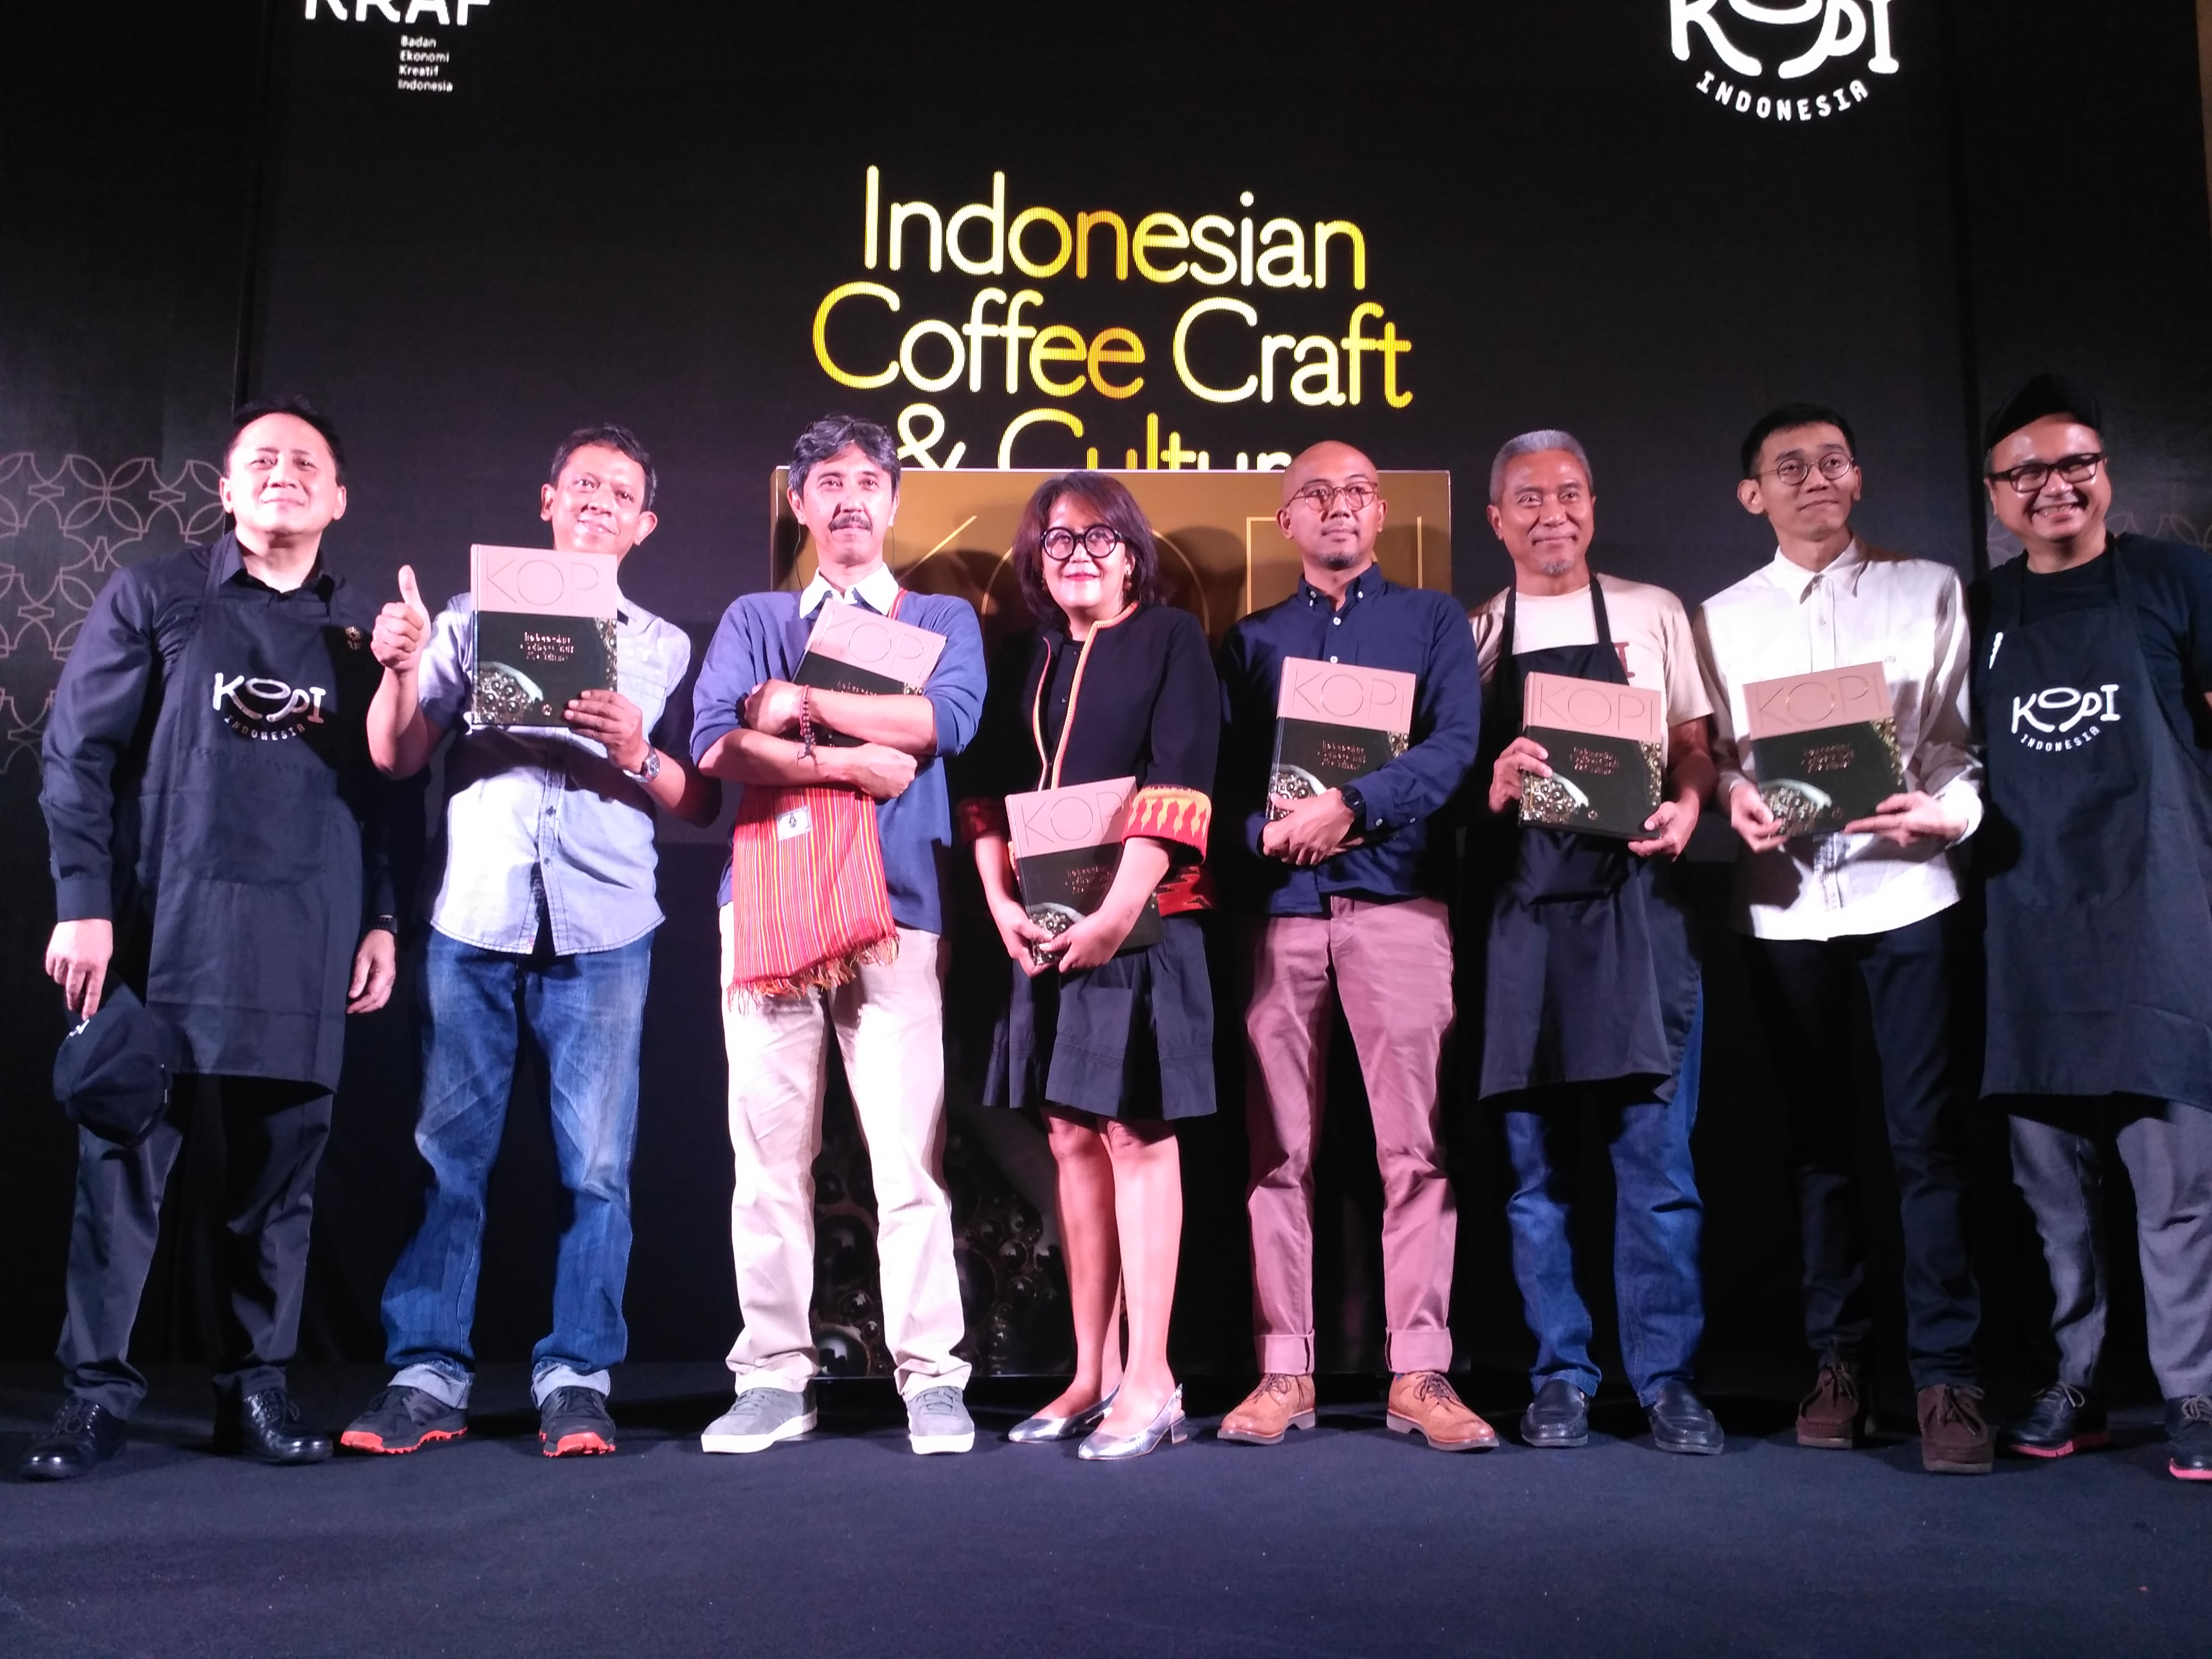 Kopi Indonesia, Craft & Culture